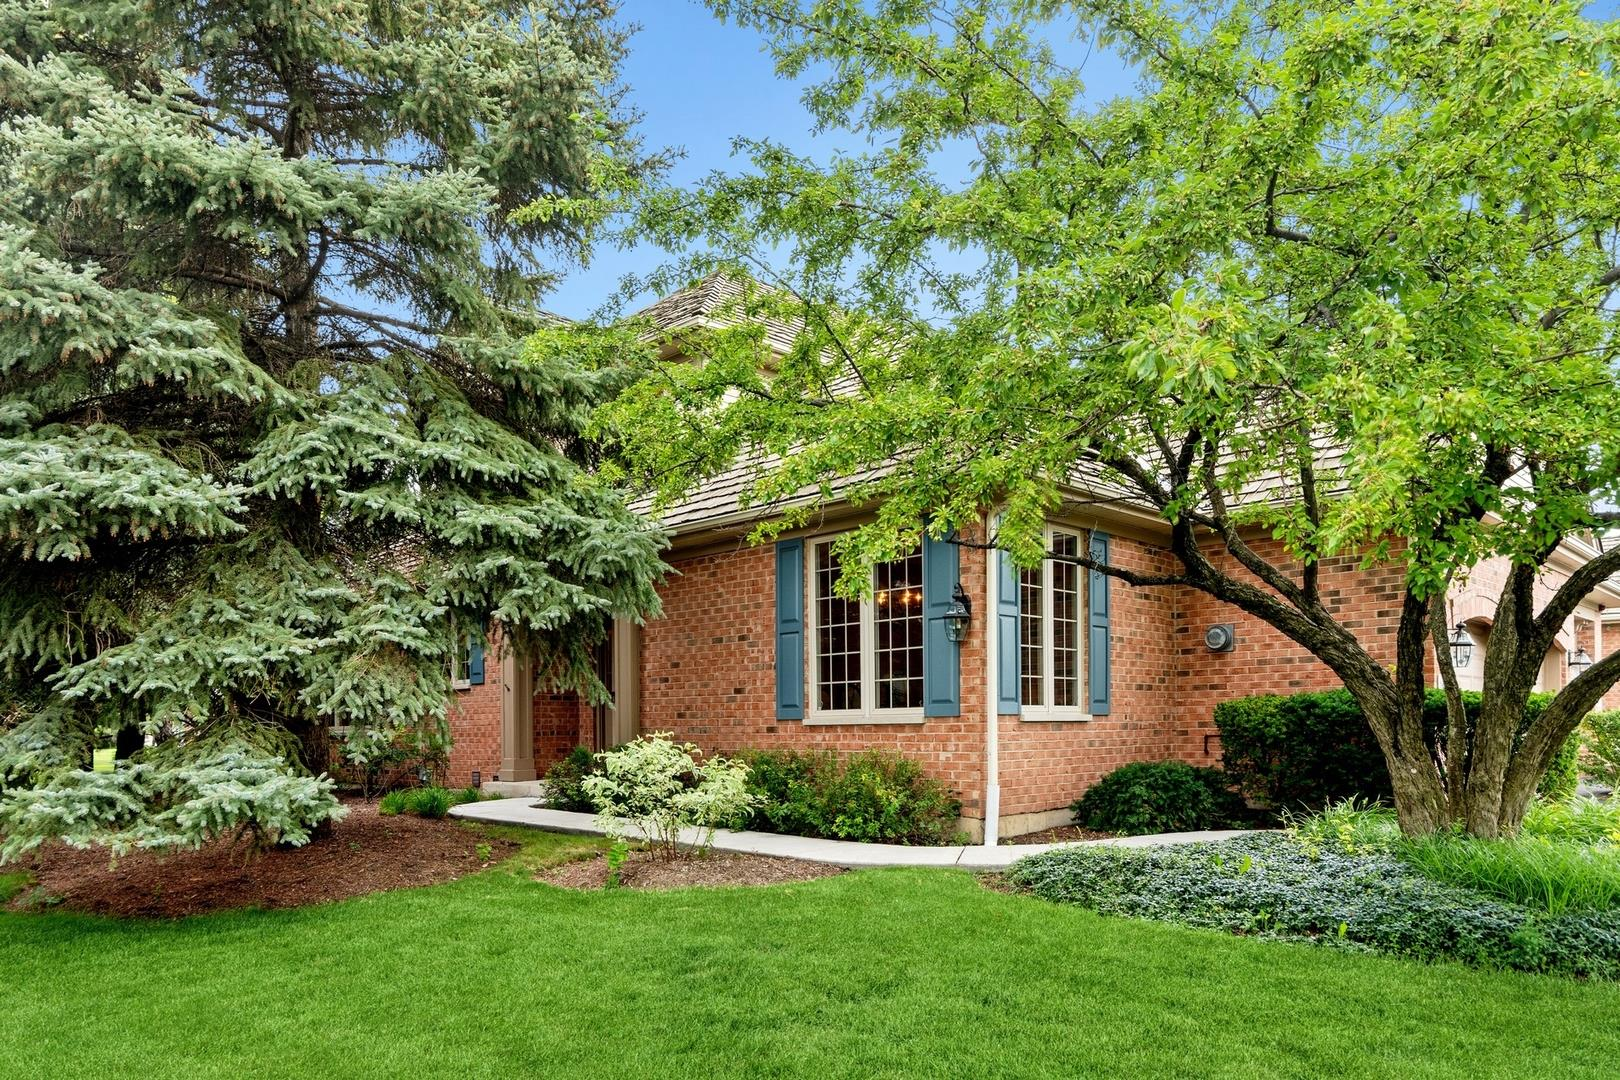 1808 Westleigh Drive, Glenview, IL 60025 - #: 11158164